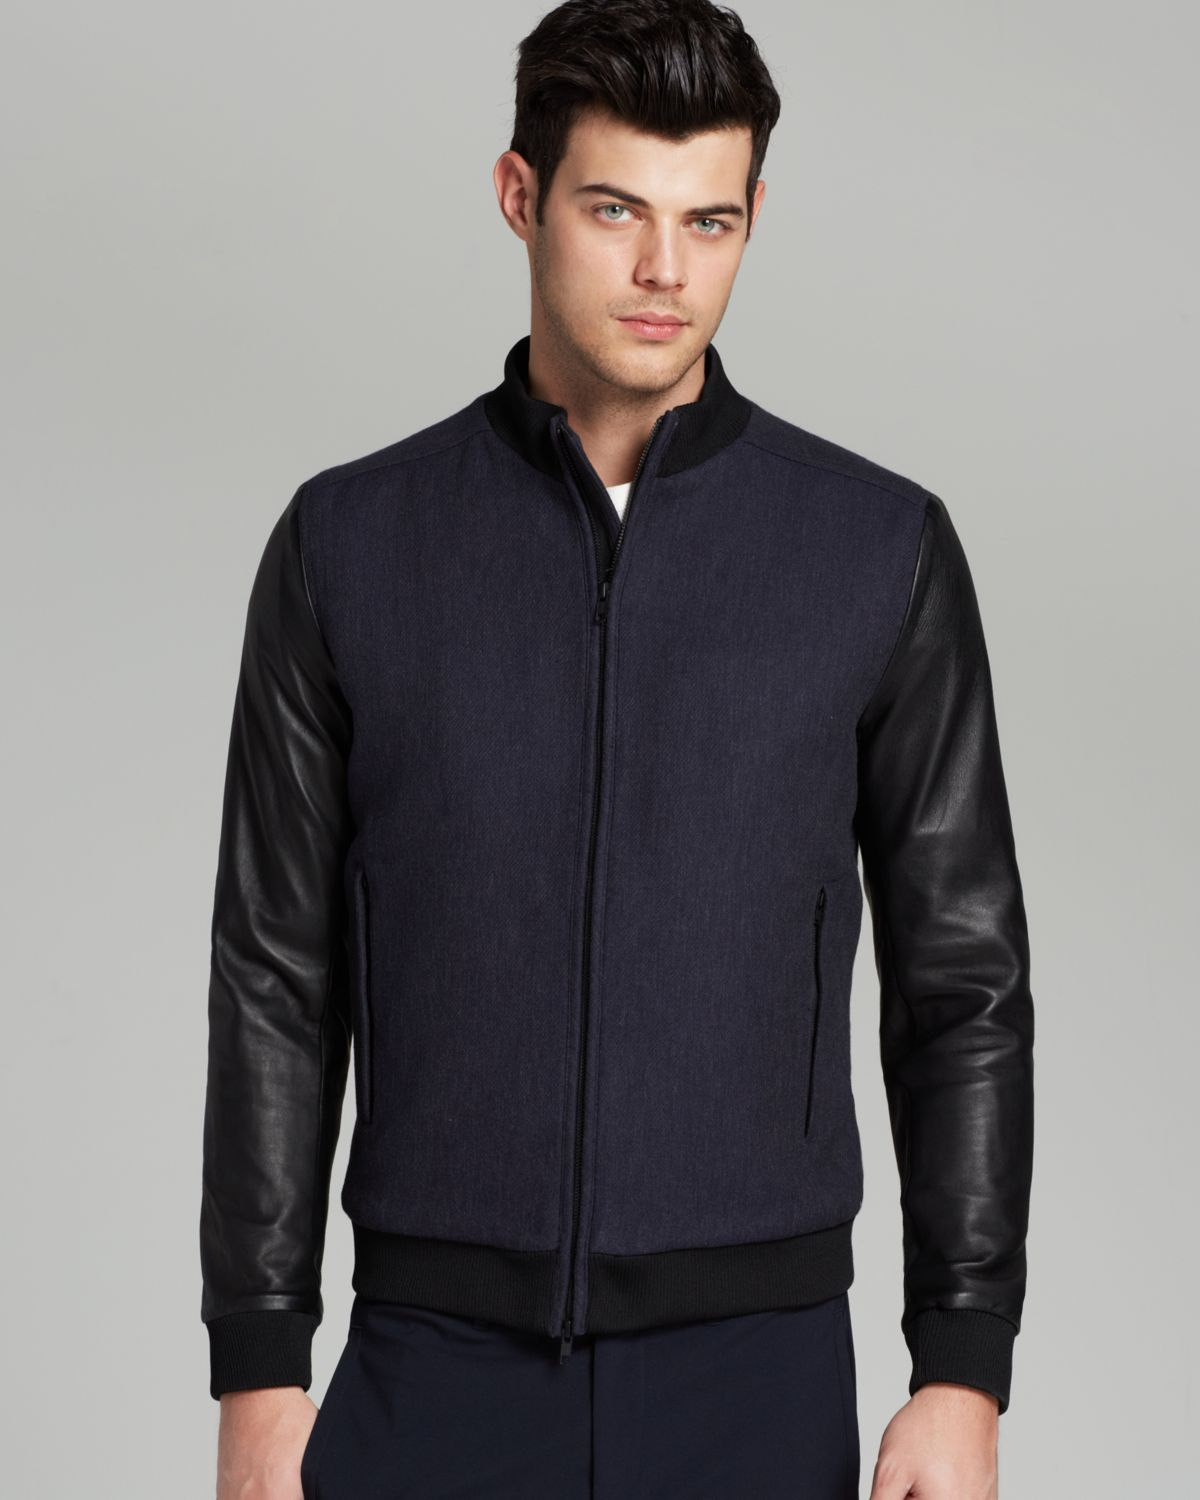 4ae97ce4e Theory Blue Bolmanne Bomber Jacket - Exclusive To Bloomingdale's for men